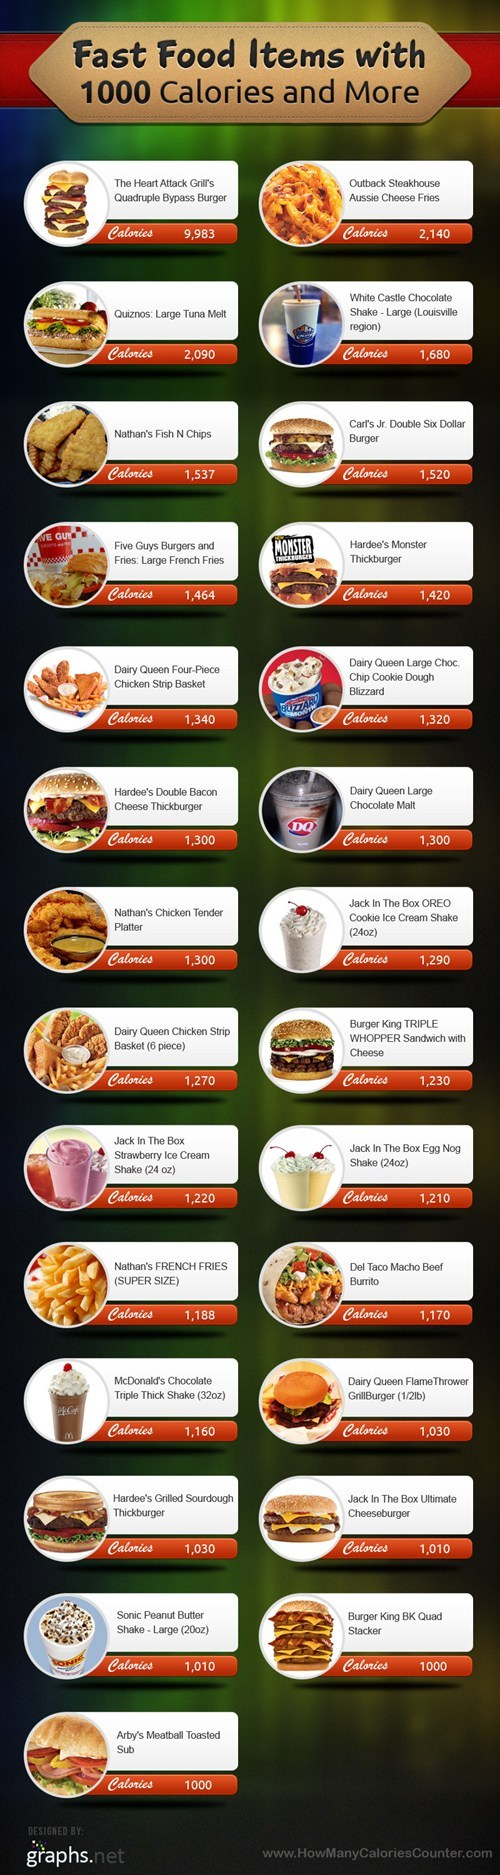 Heart Attack Grill calories health obesity infographic fast food